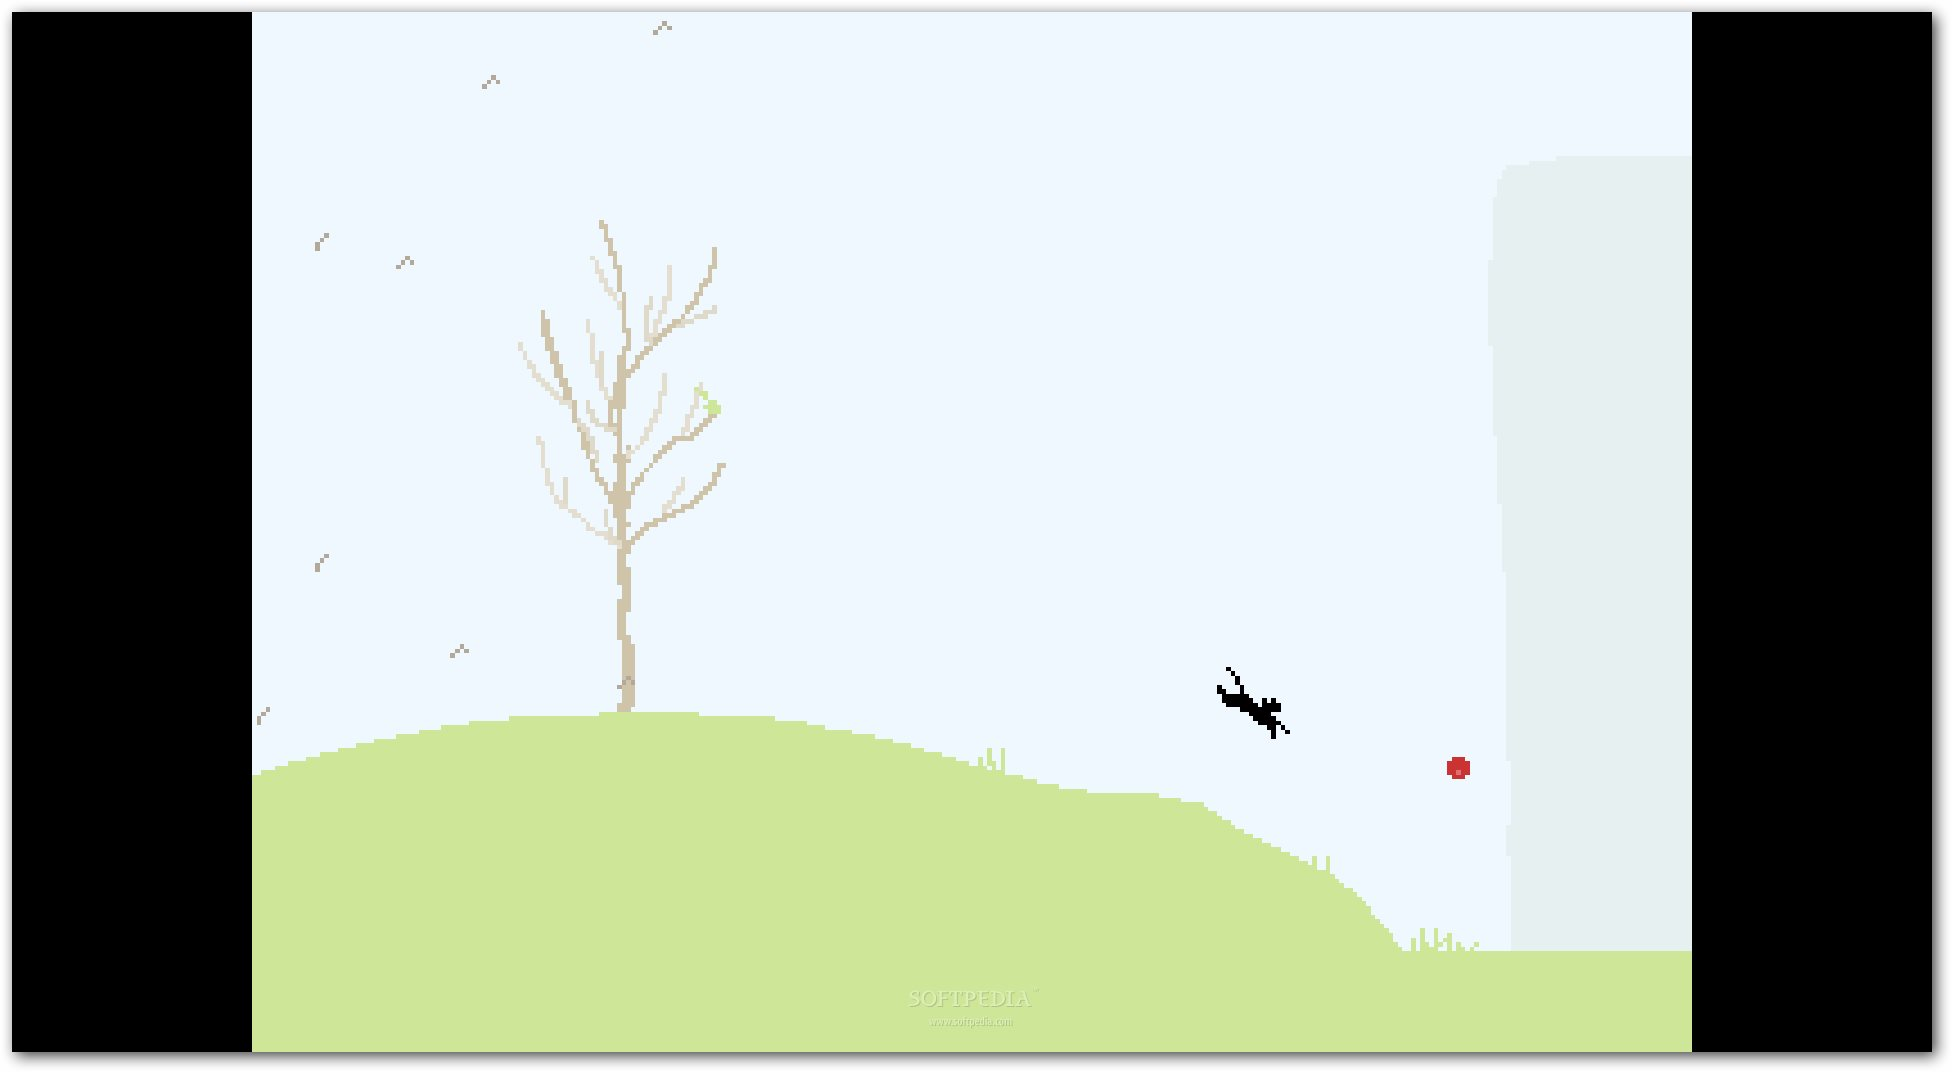 Stray Whisker screenshot 3